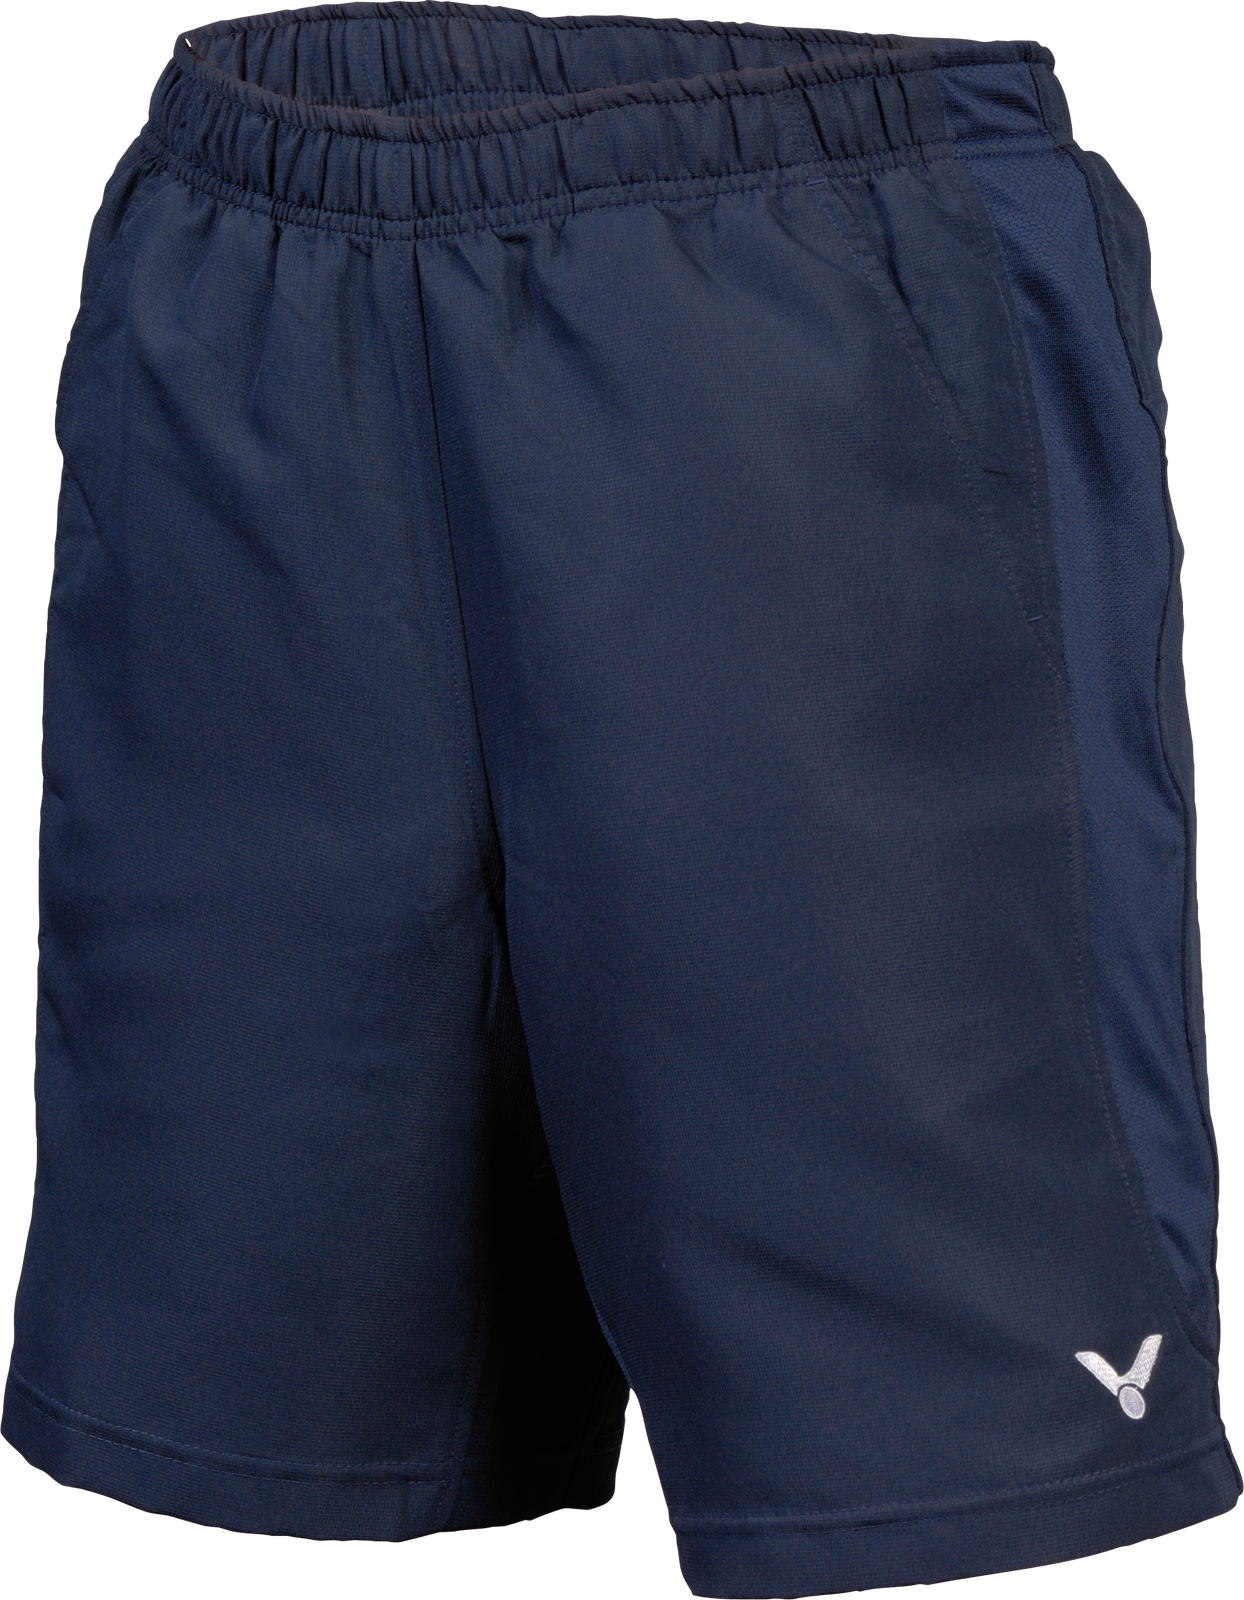 Victor Shorts Longfither blau